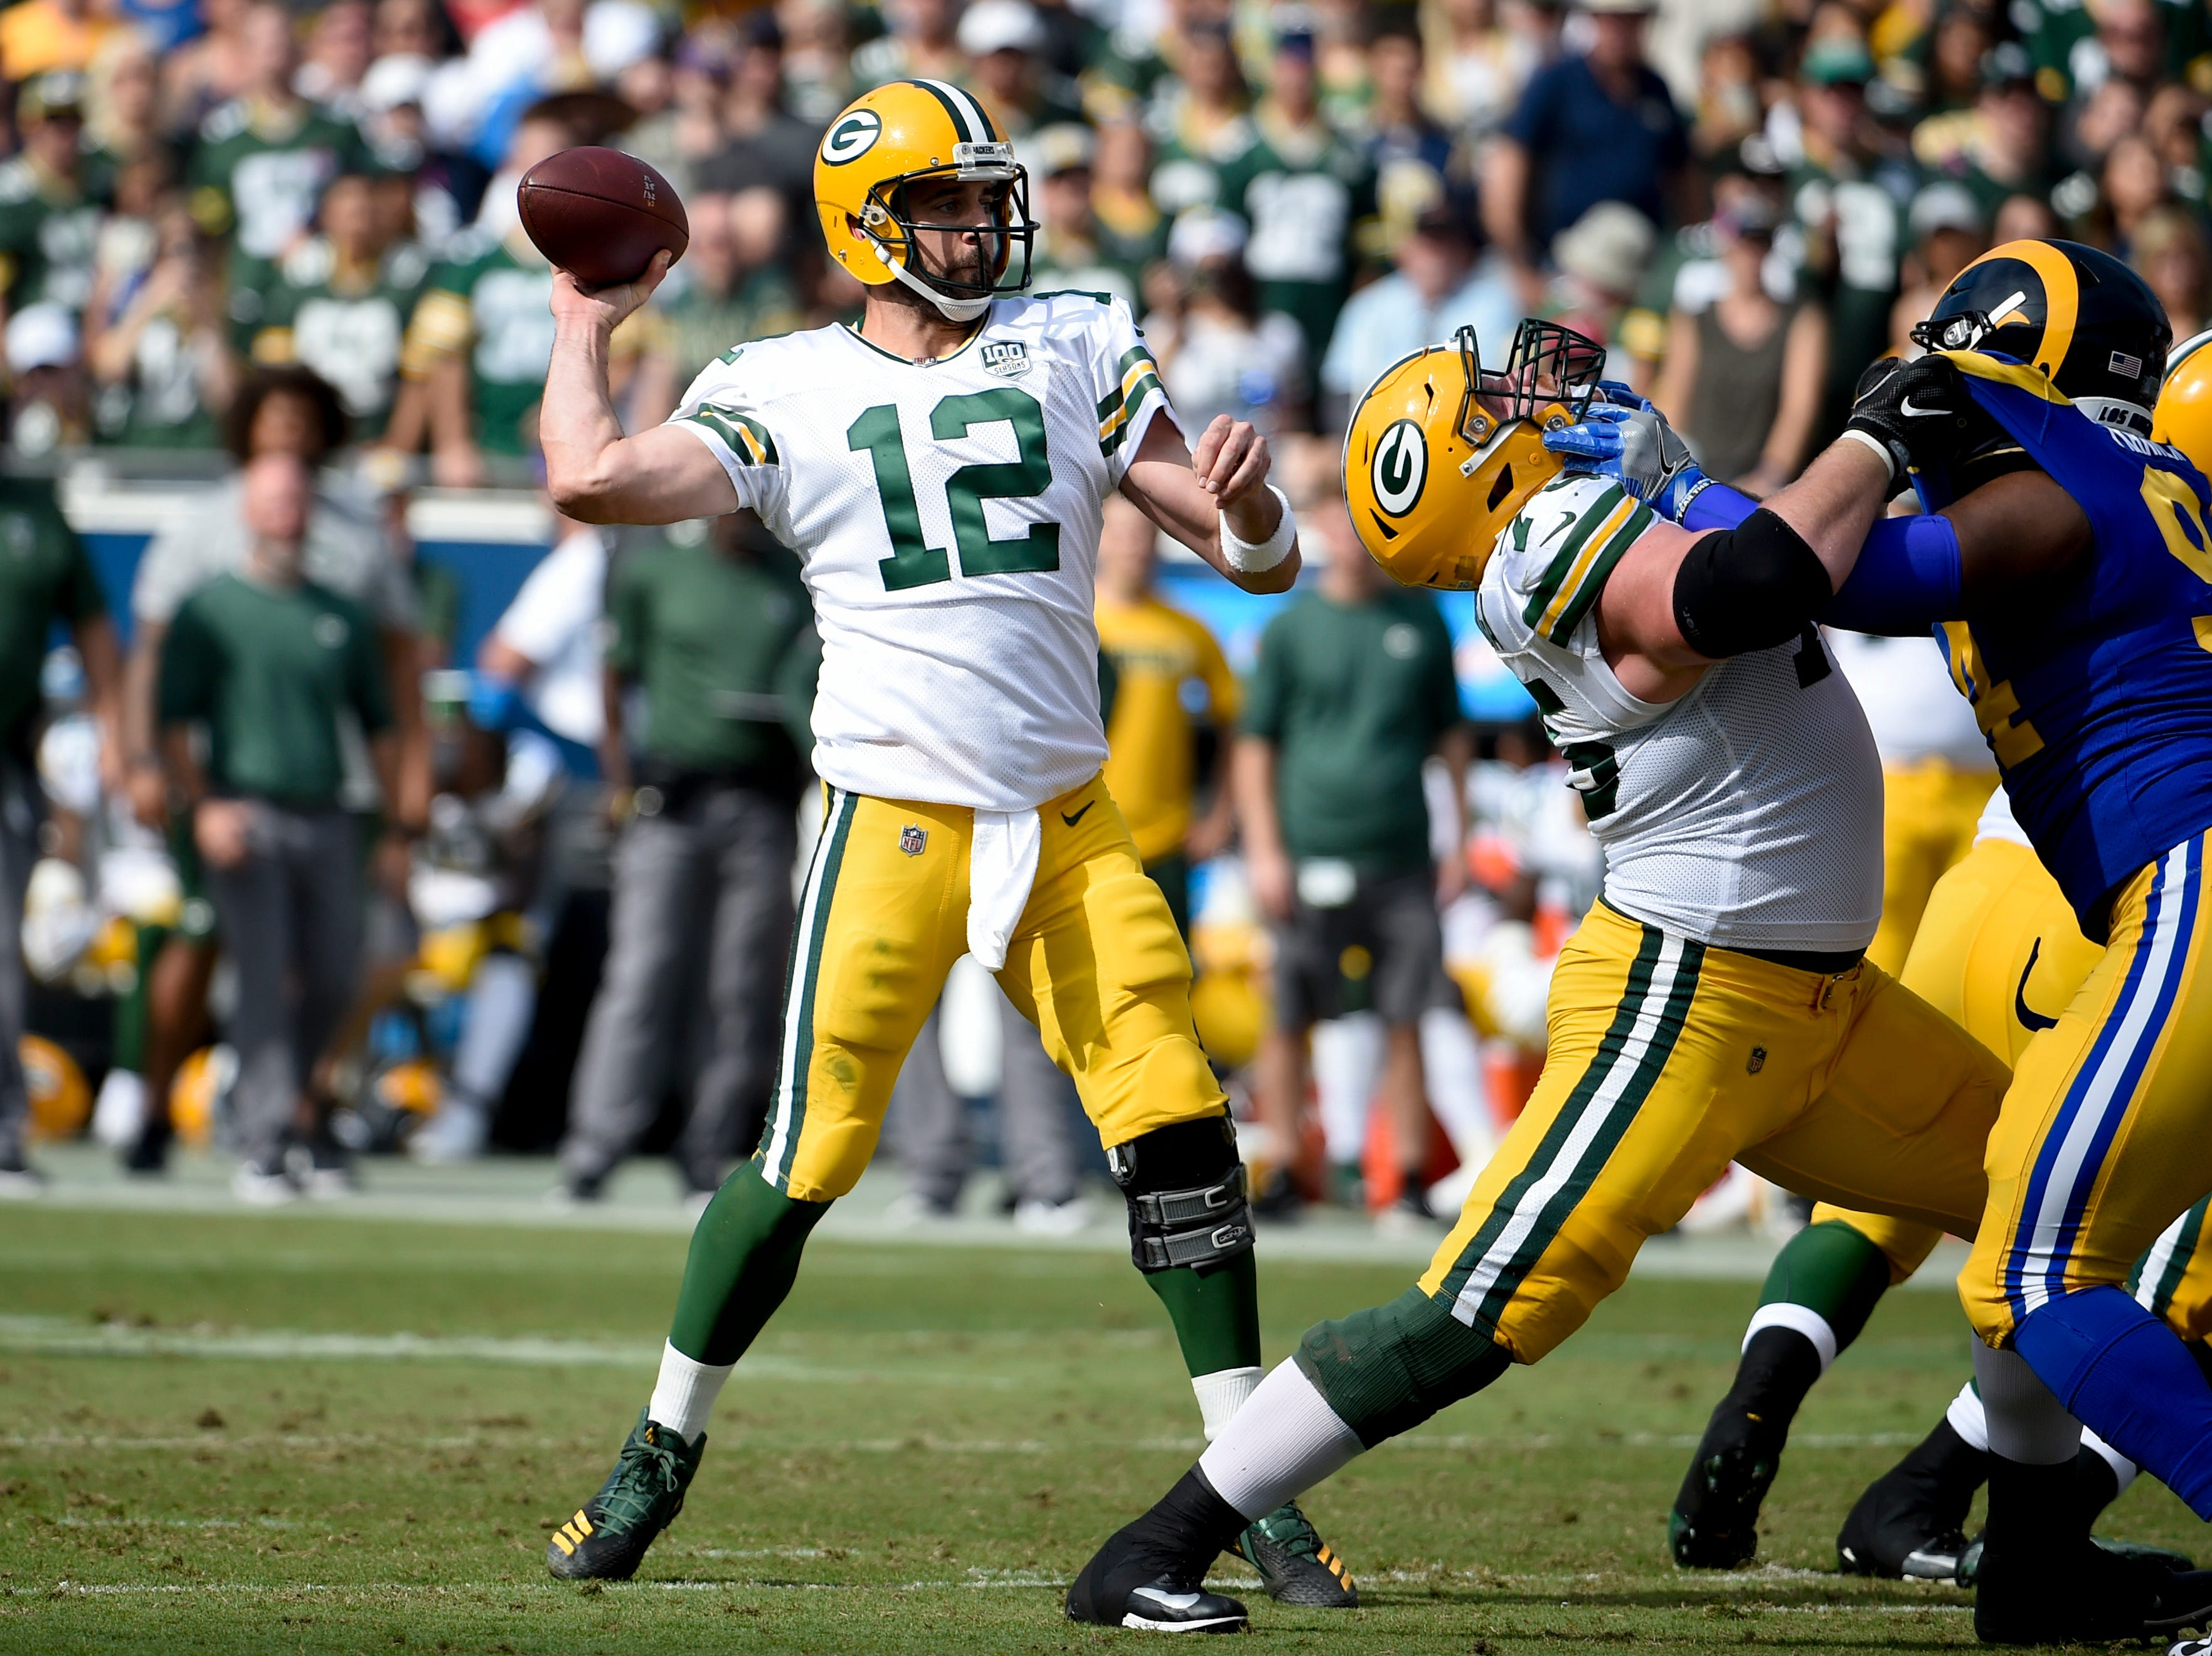 Green Bay Packers quarterback Aaron Rodgers throws a pass during the first half of an NFL football game against the Los Angeles Rams, Sunday, Oct. 28, 2018, in Los Angeles. (AP Photo/Denis Poroy)